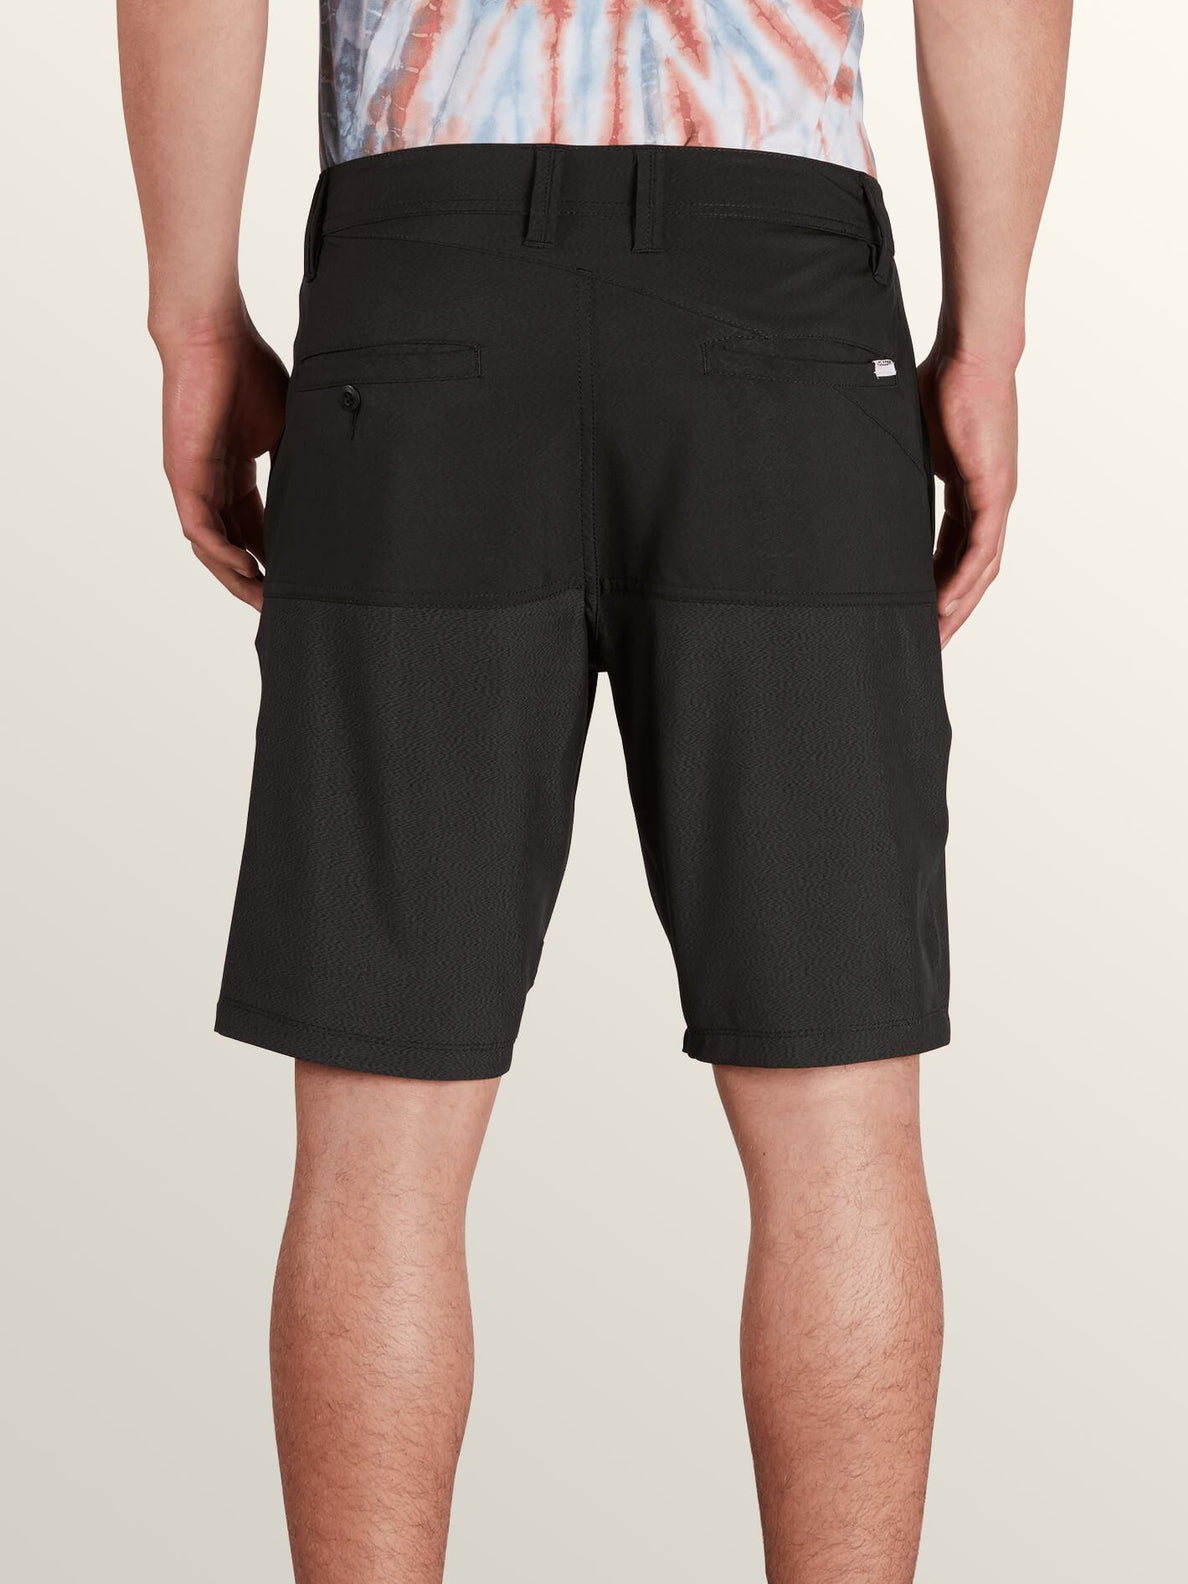 Surf 'N Turf Hybrid Block Hybrid Shorts In Black, Back View